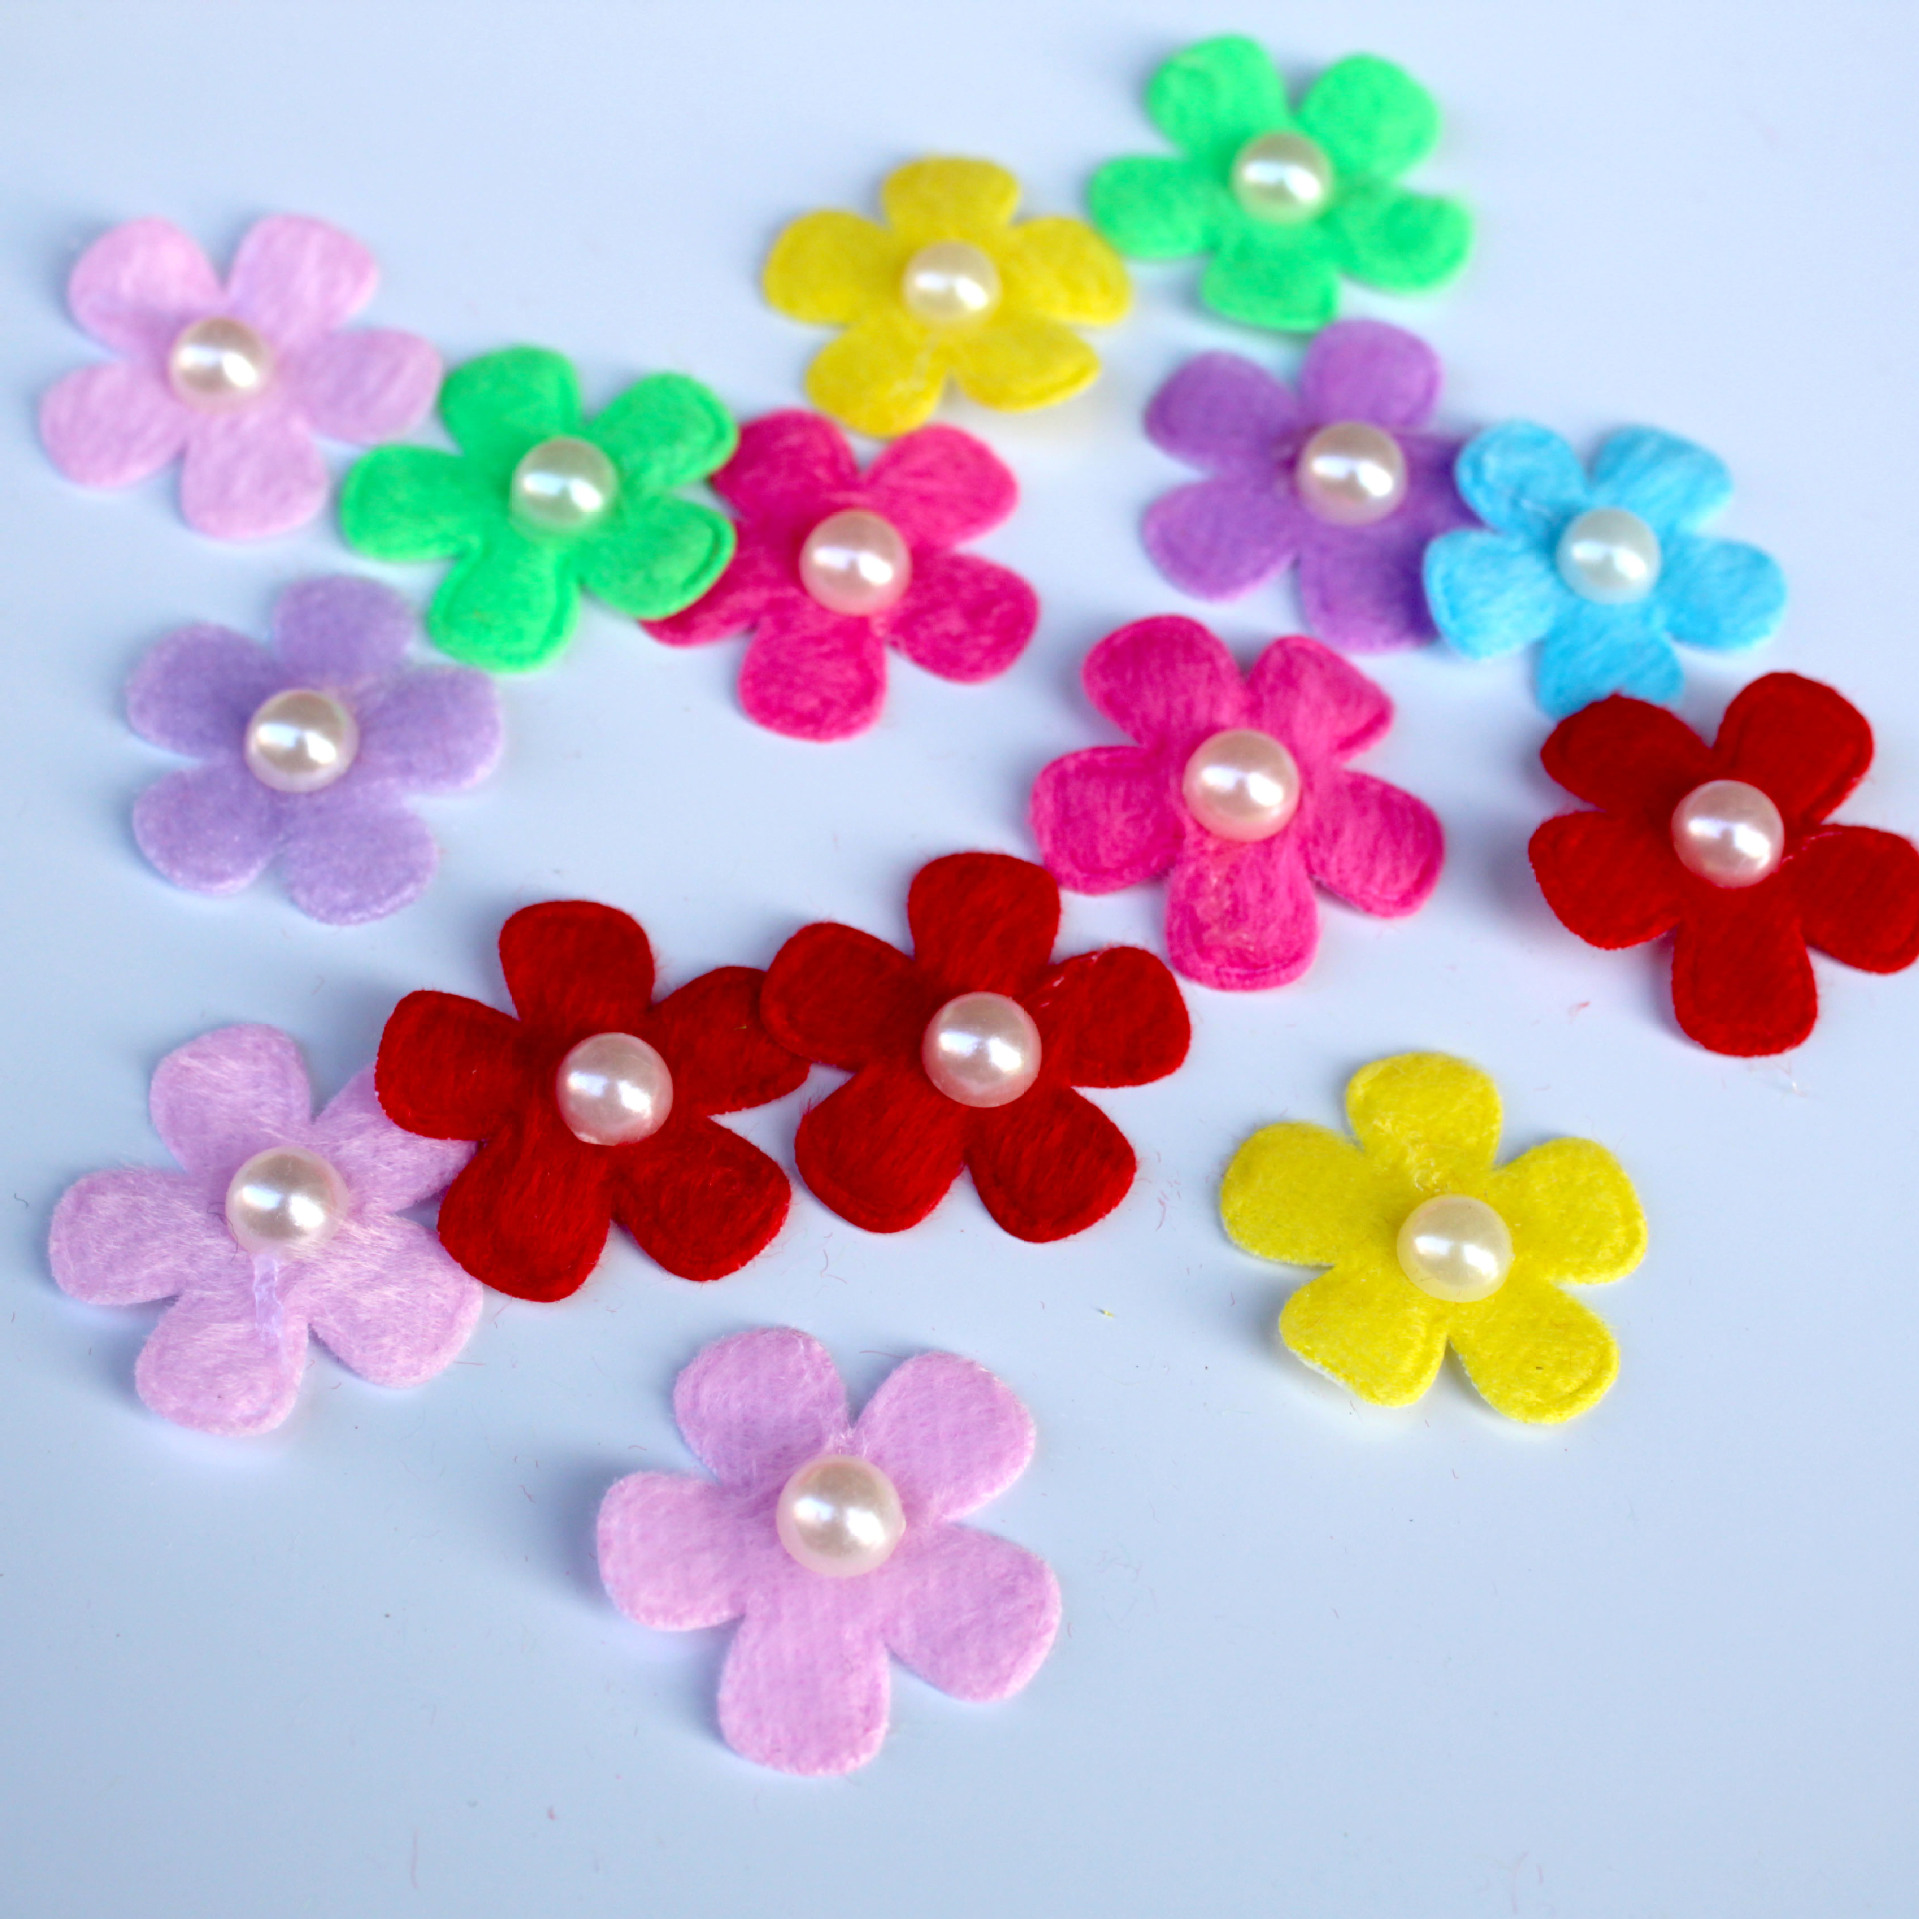 100 Scrapbook Die Cut Flower Non Woven Felt Fabric Flower Embellishment 35mm